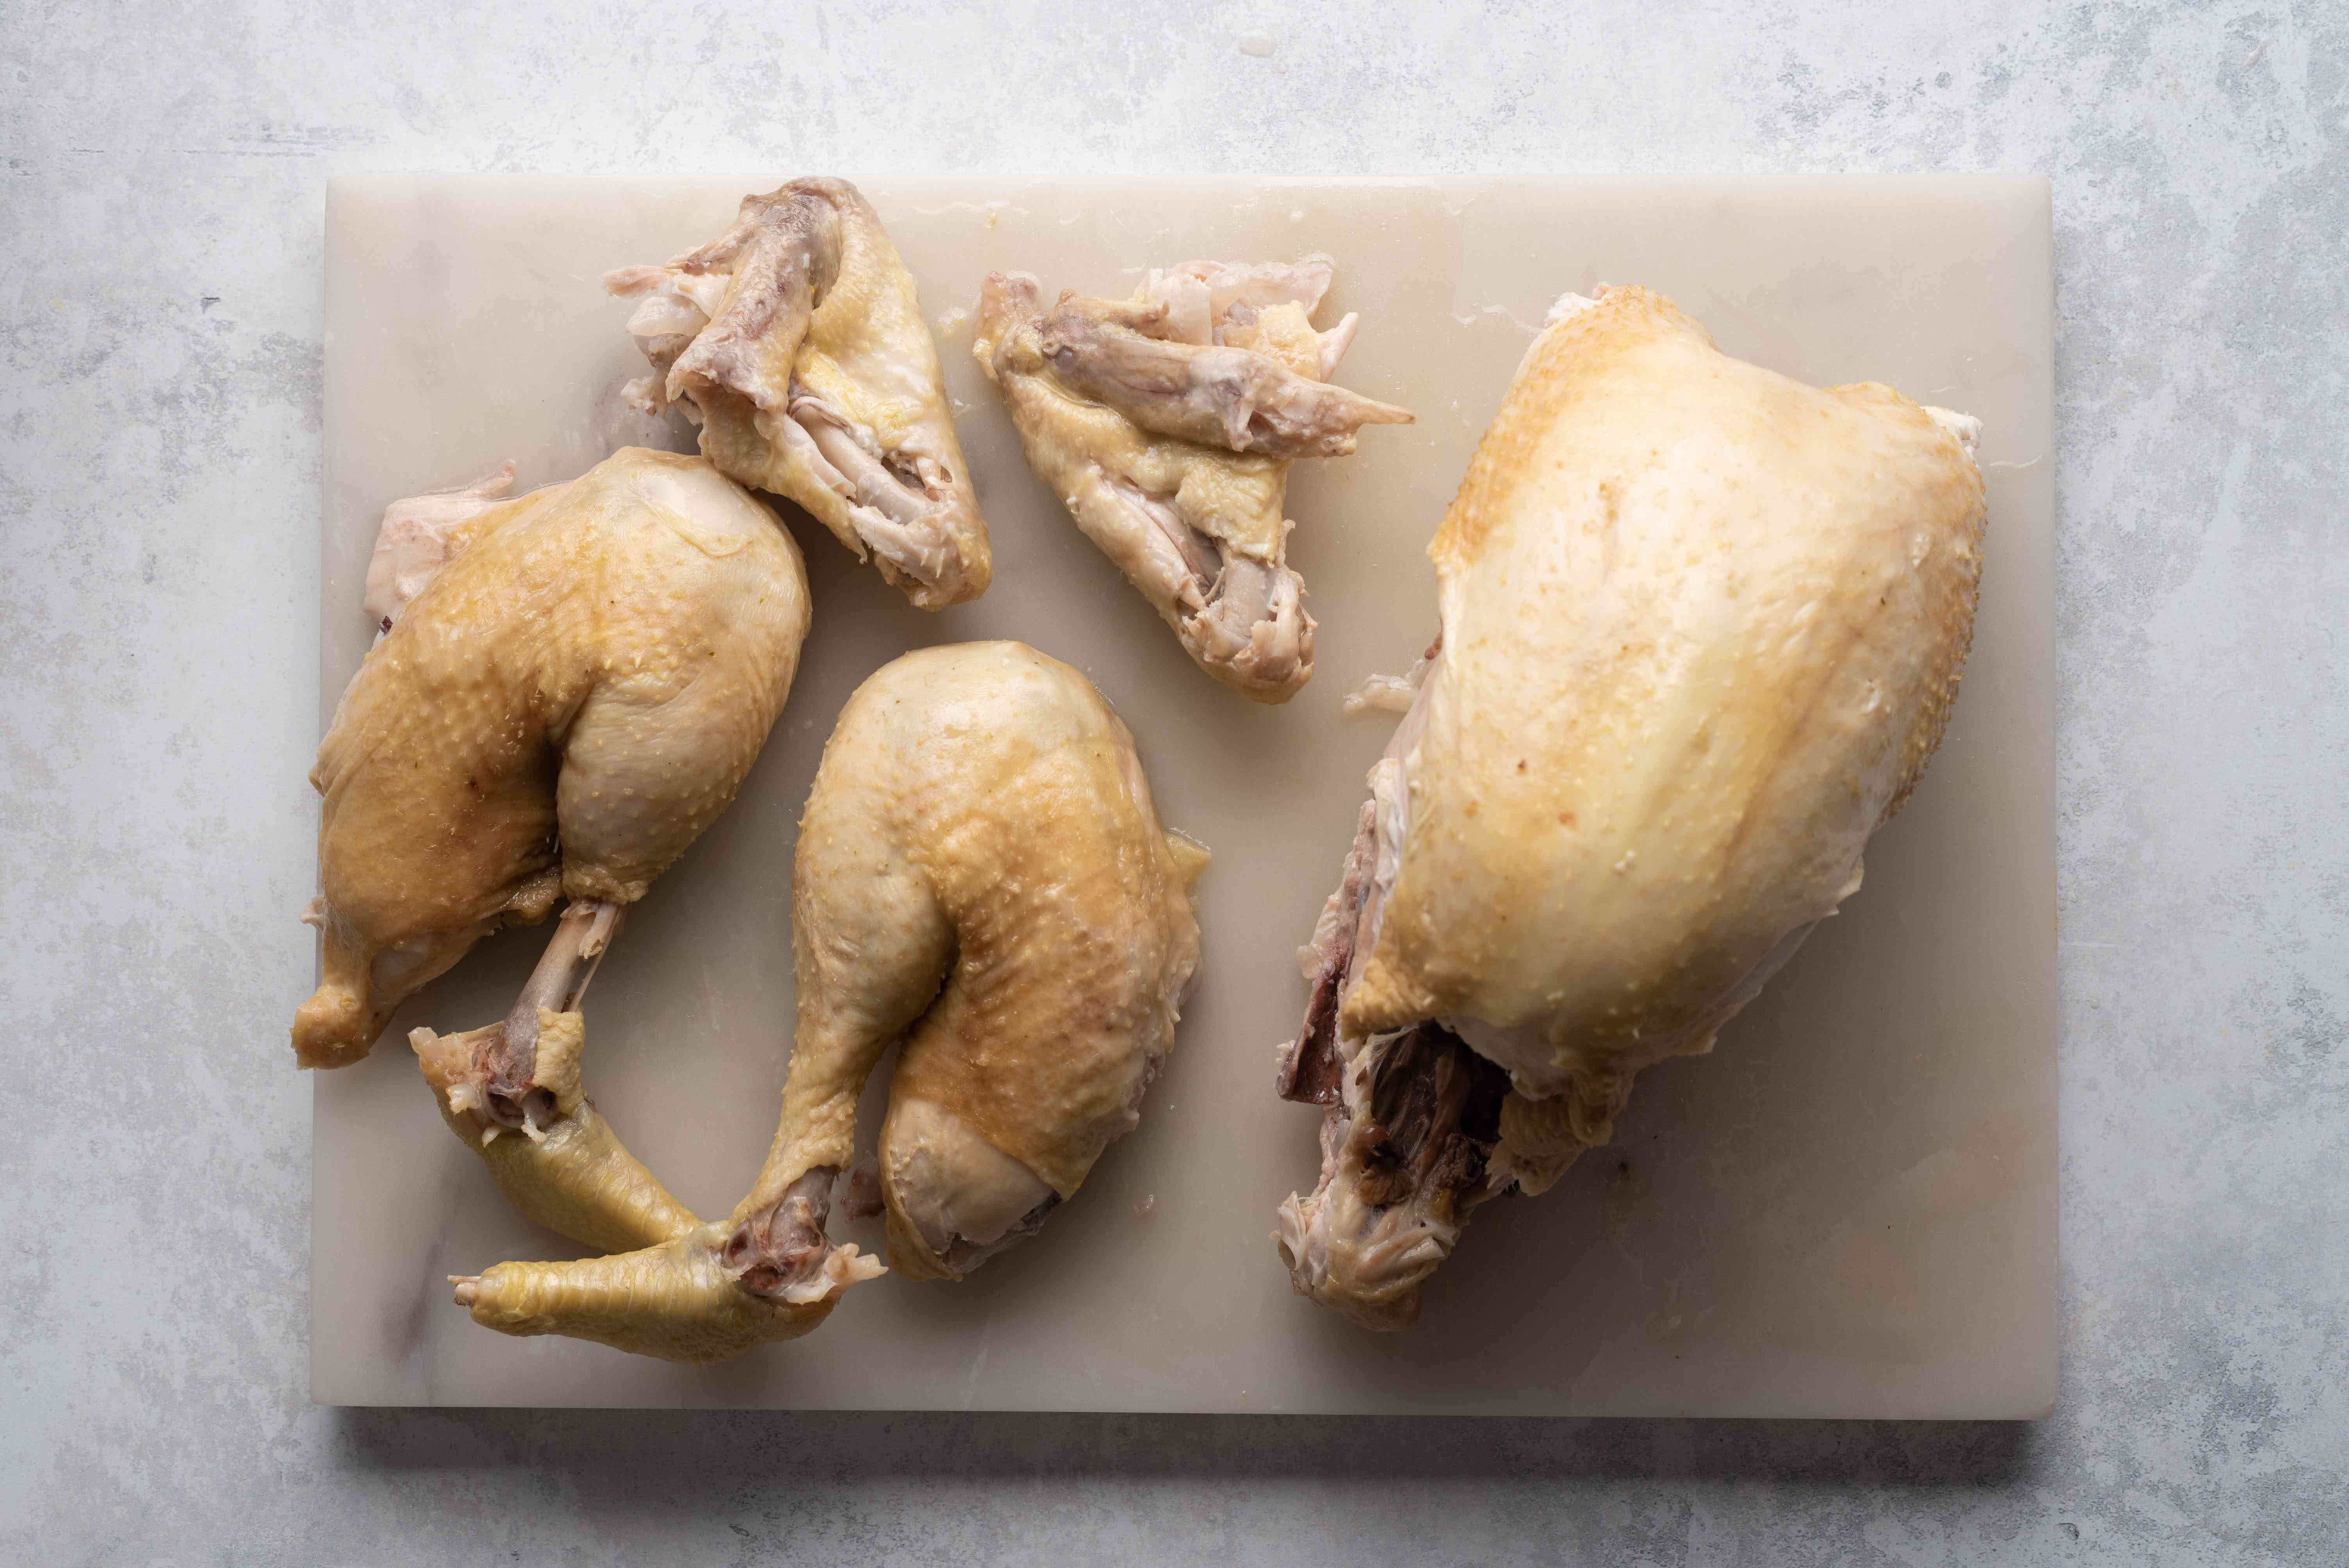 chicken with the wings removed